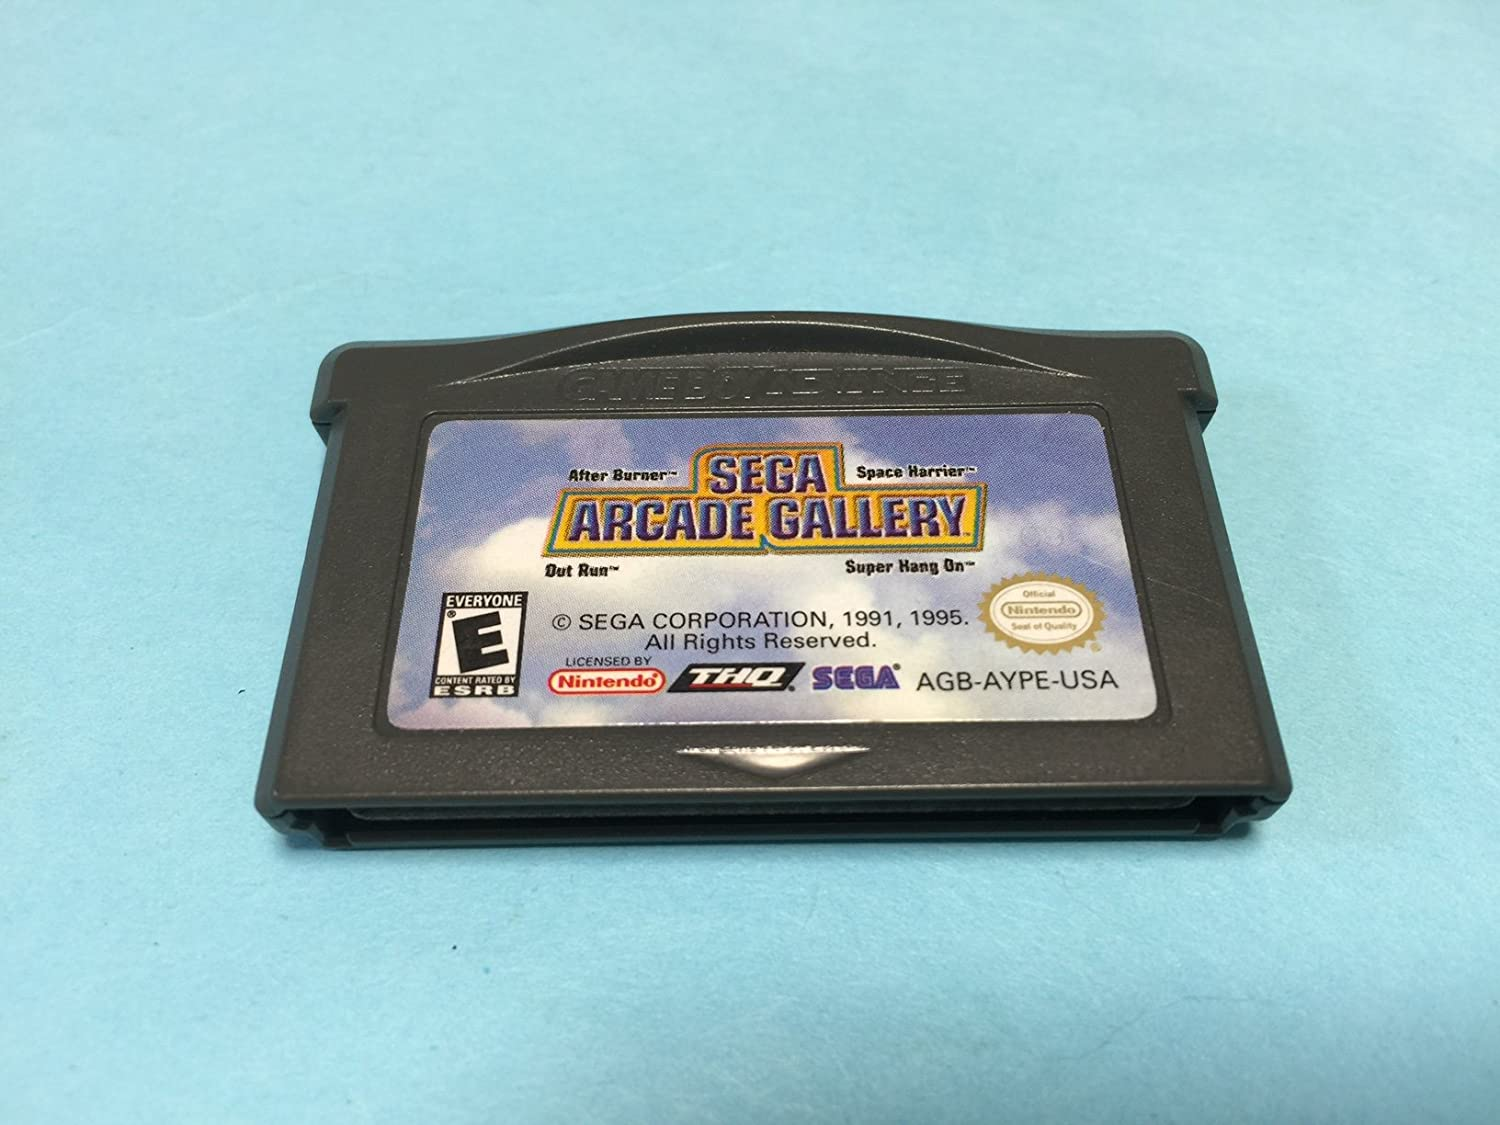 Amazon Com Sega Arcade Gallery After Burner Outrun Super Hang On And Space Harrier Game Boy Advance Gameboy Video Games